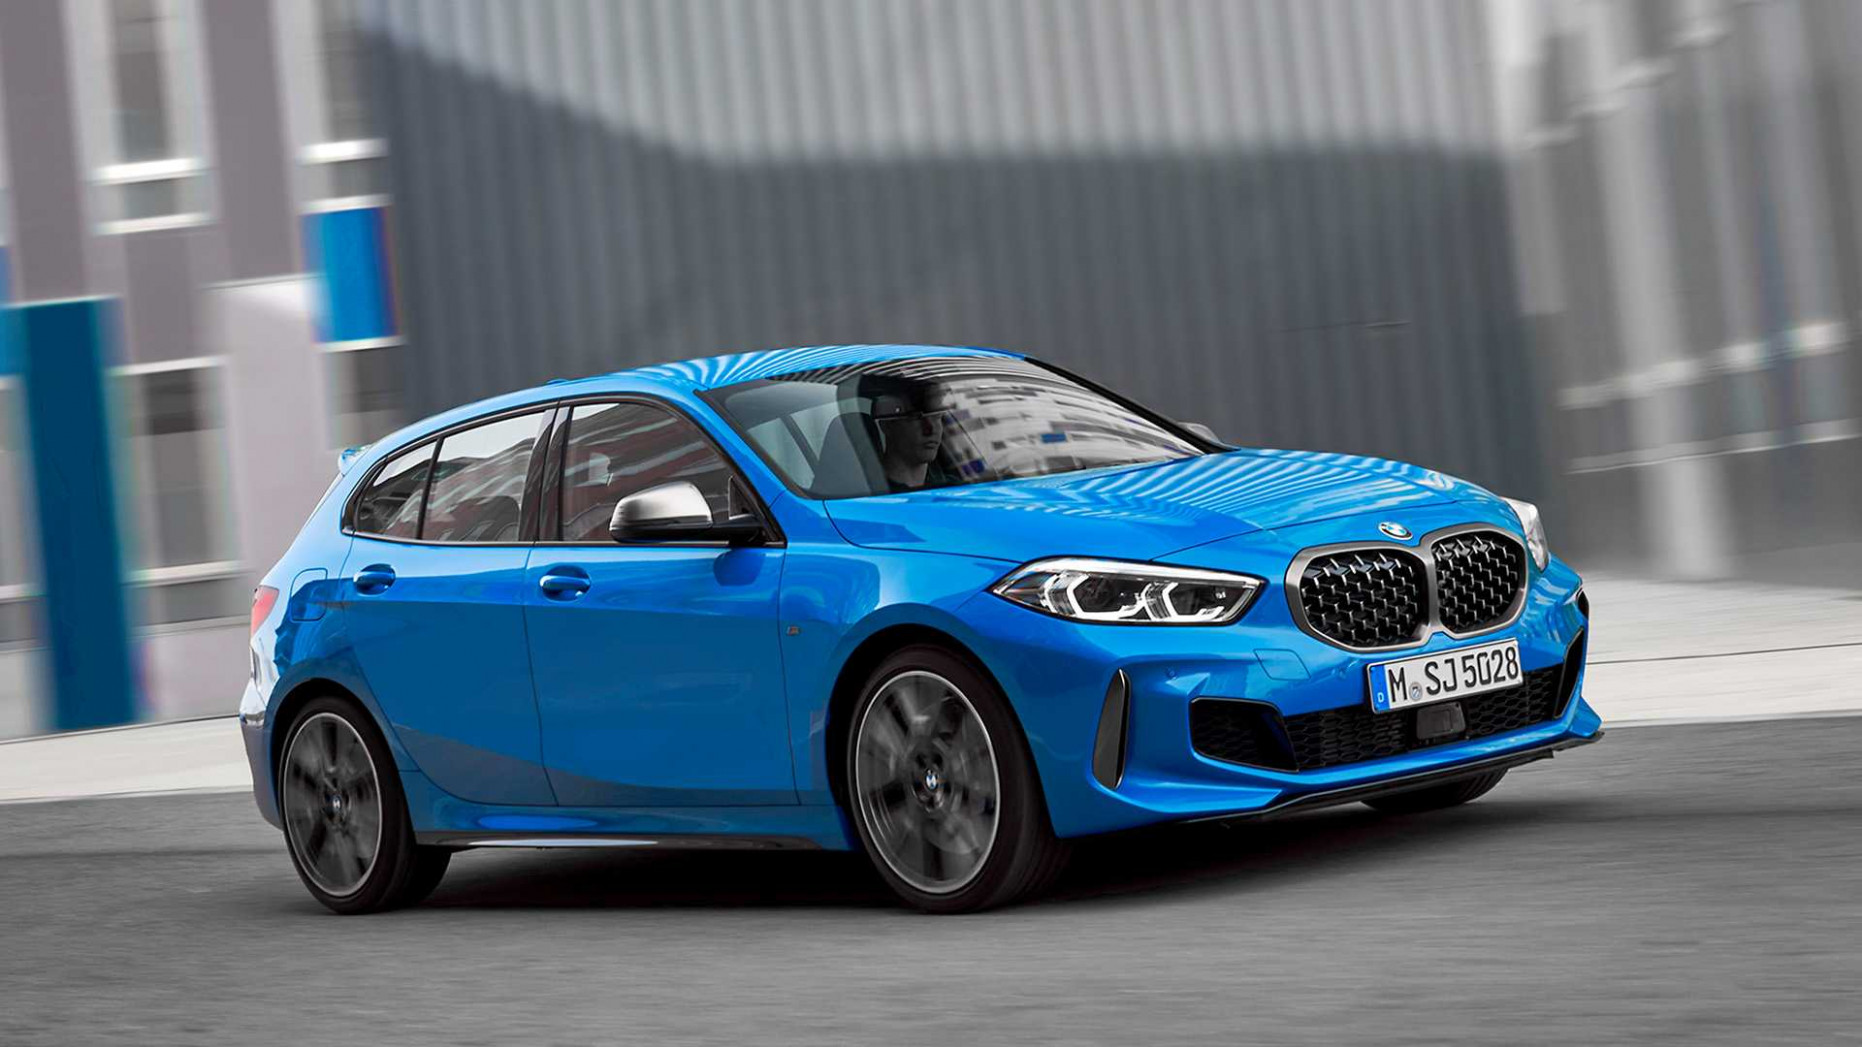 6 BMW 6 Series Hatchback Debuts With 6.6-liter Turbo Engine In ..